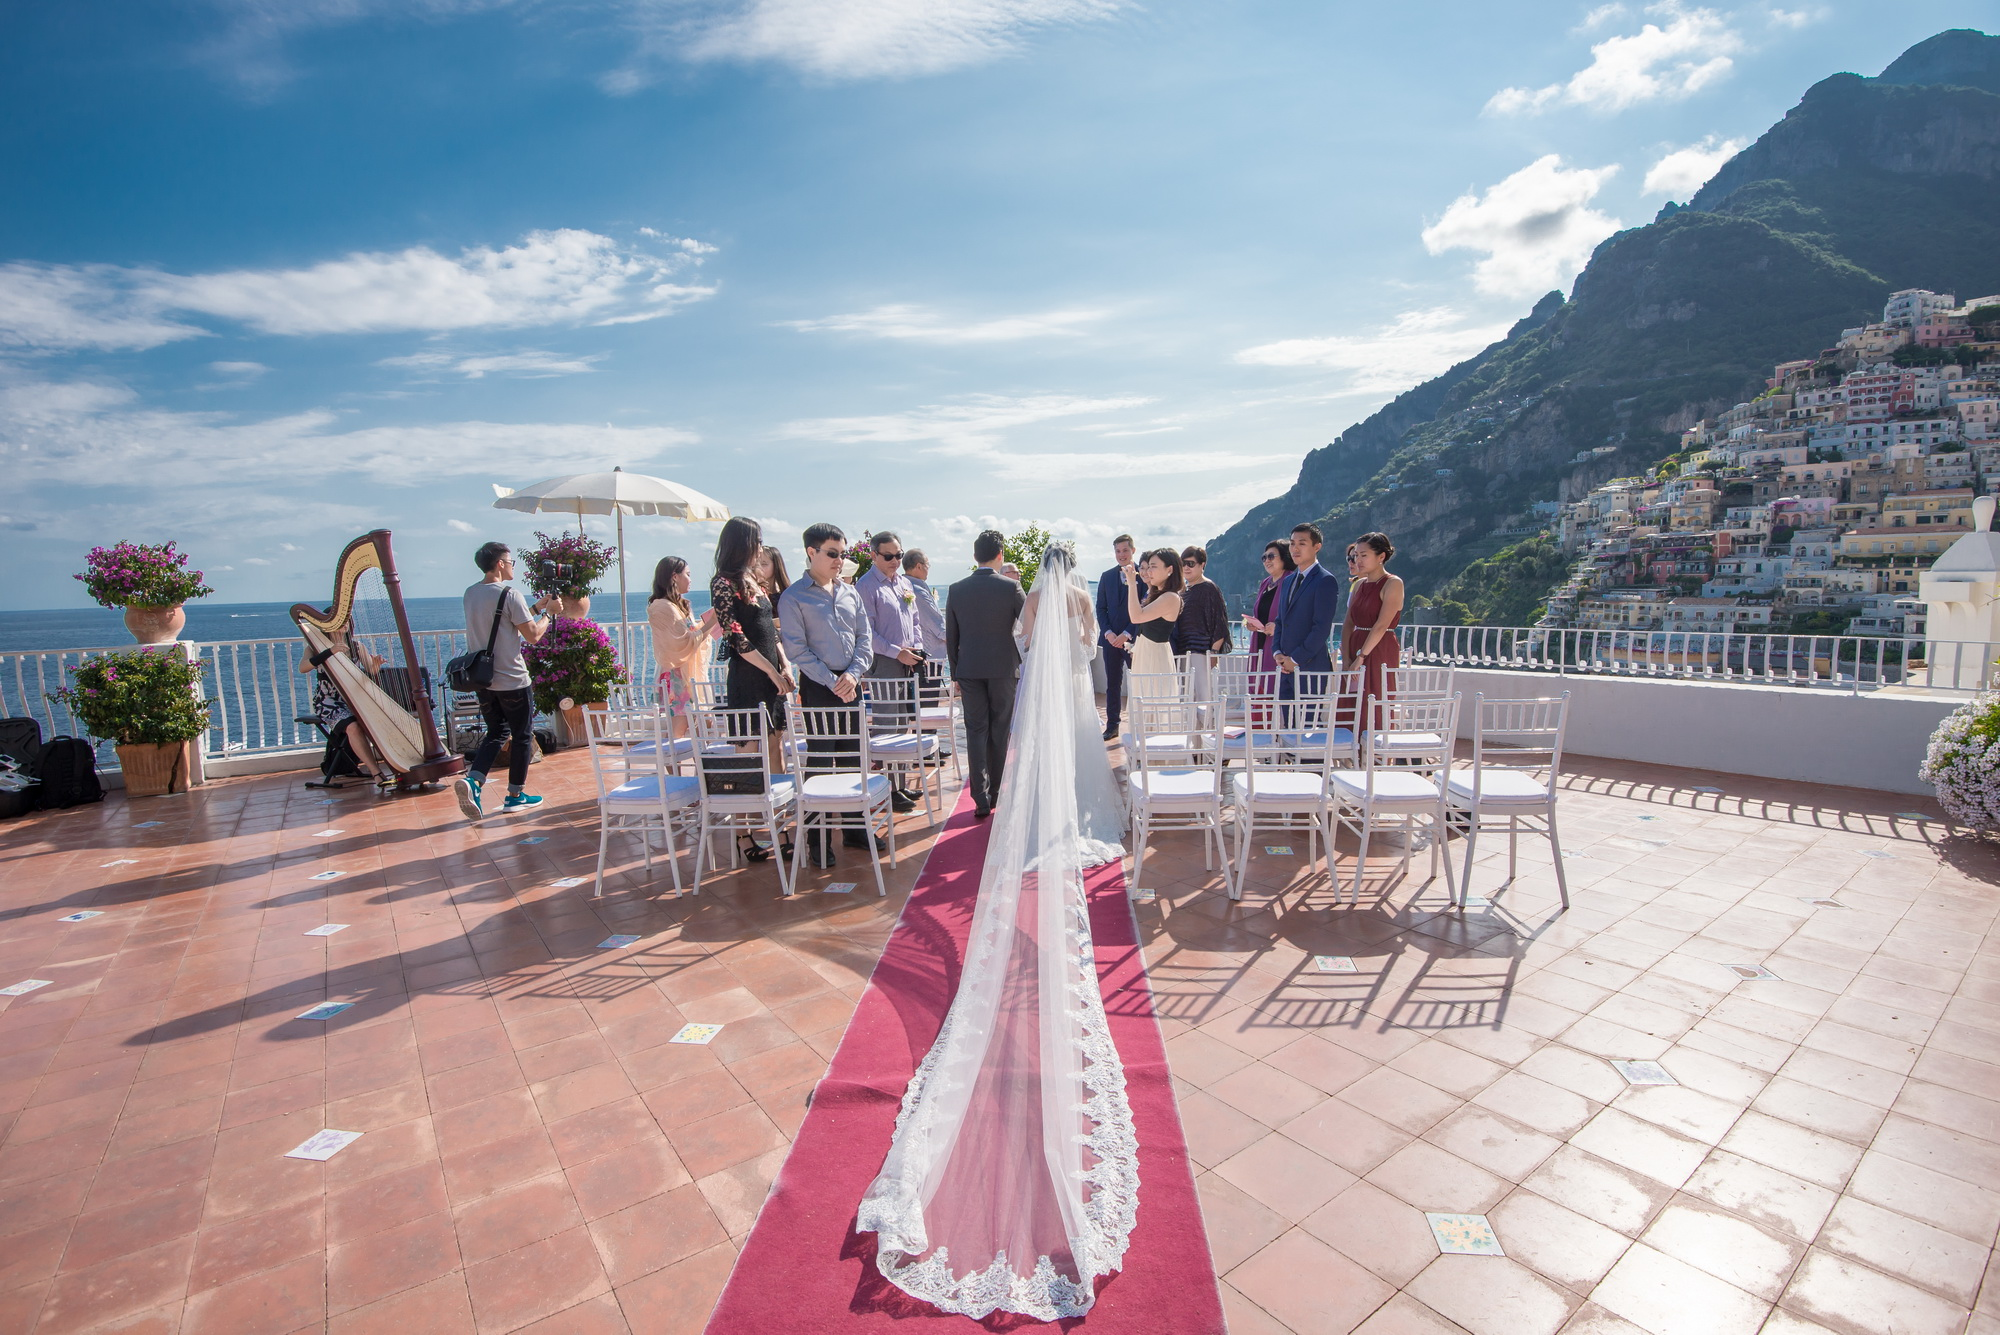 Positano_WeddingDay_J+D08